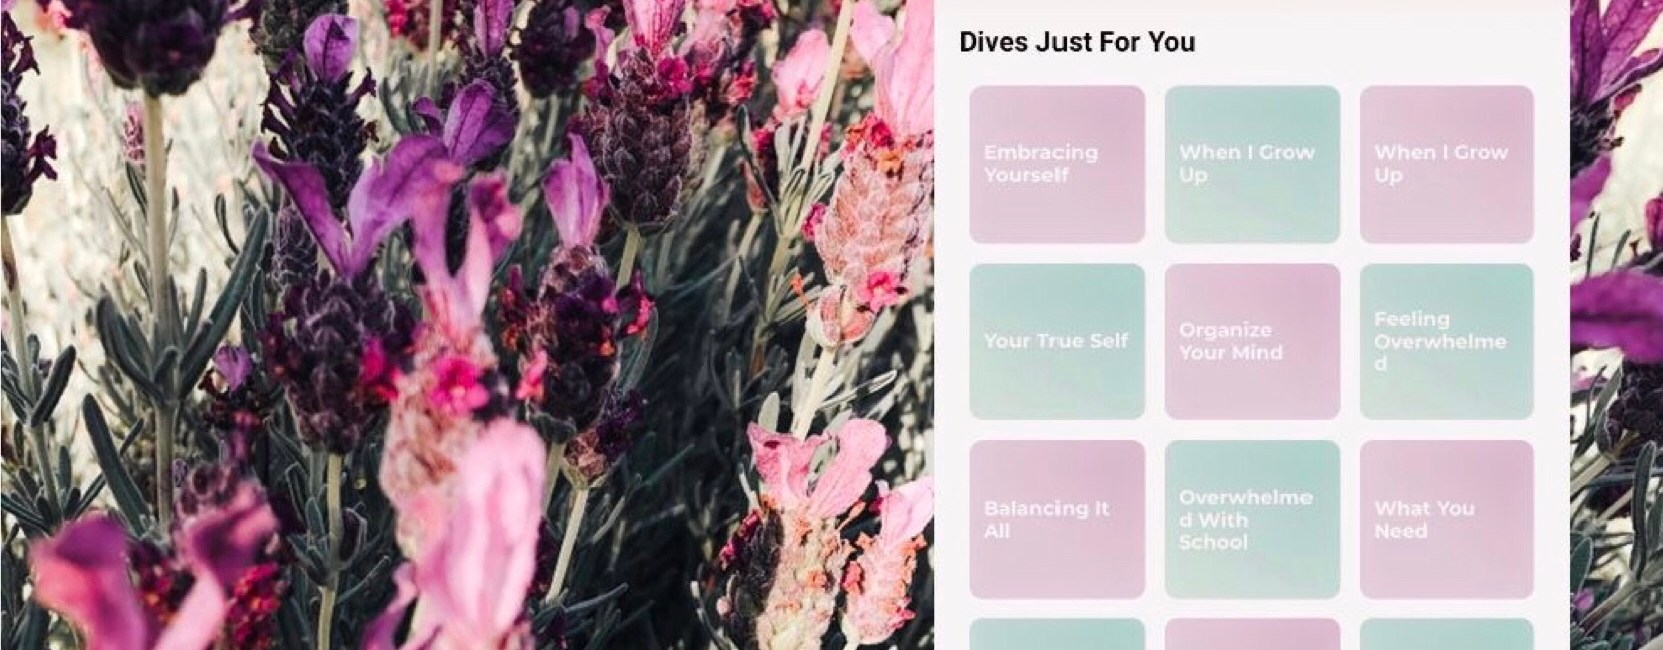 Introducing DiveThru- the newest addition to your wellness routine